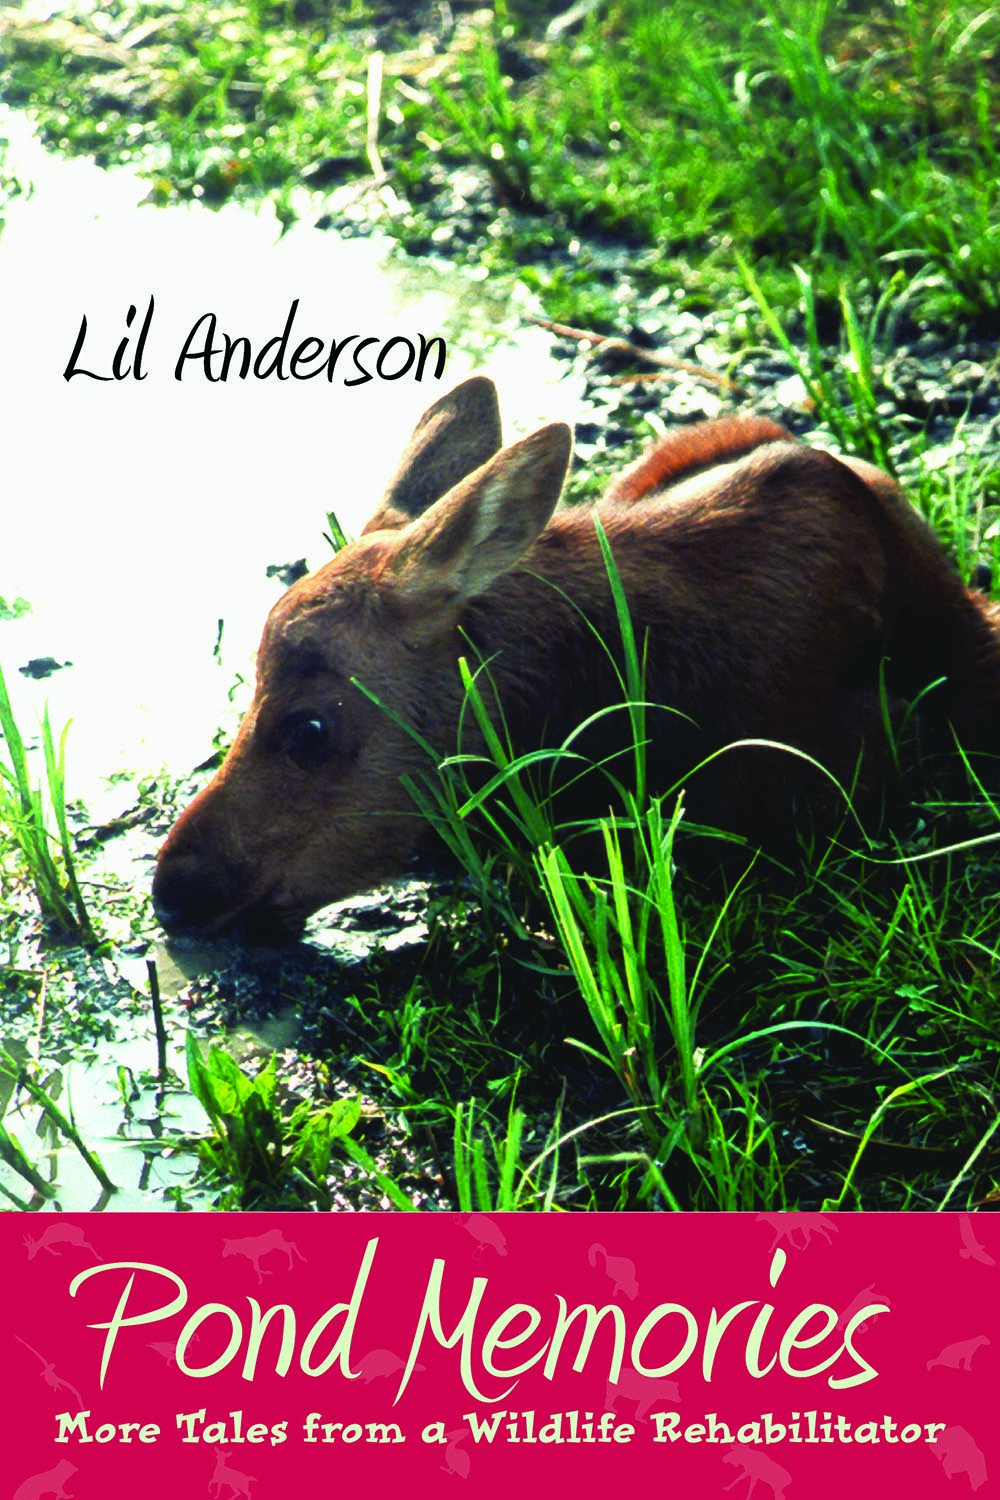 Pond Memories by Lil Anderson